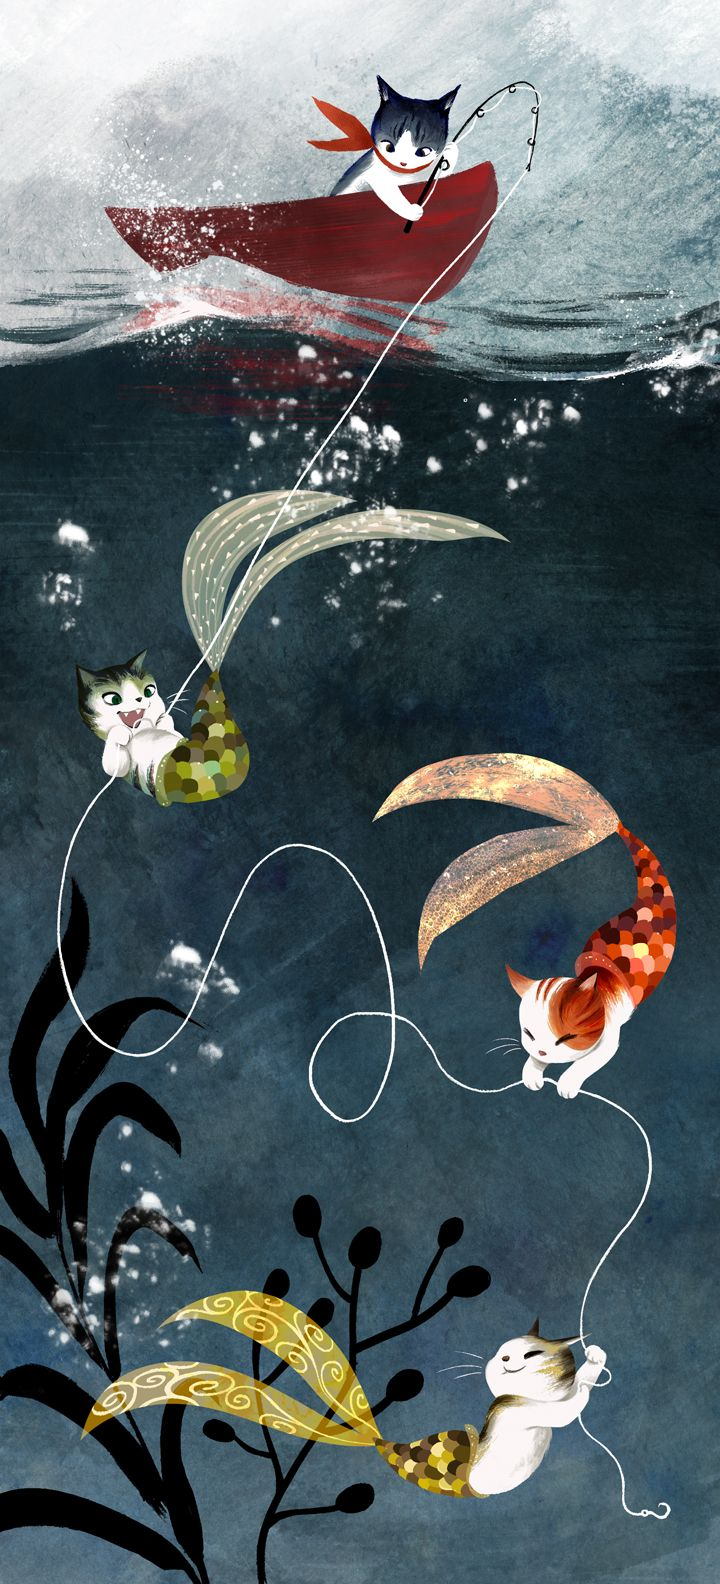 Whimsical illustration of...fishcats? Found via Erin Schechtman. ( Orig. Vivedessins on Tumblr).